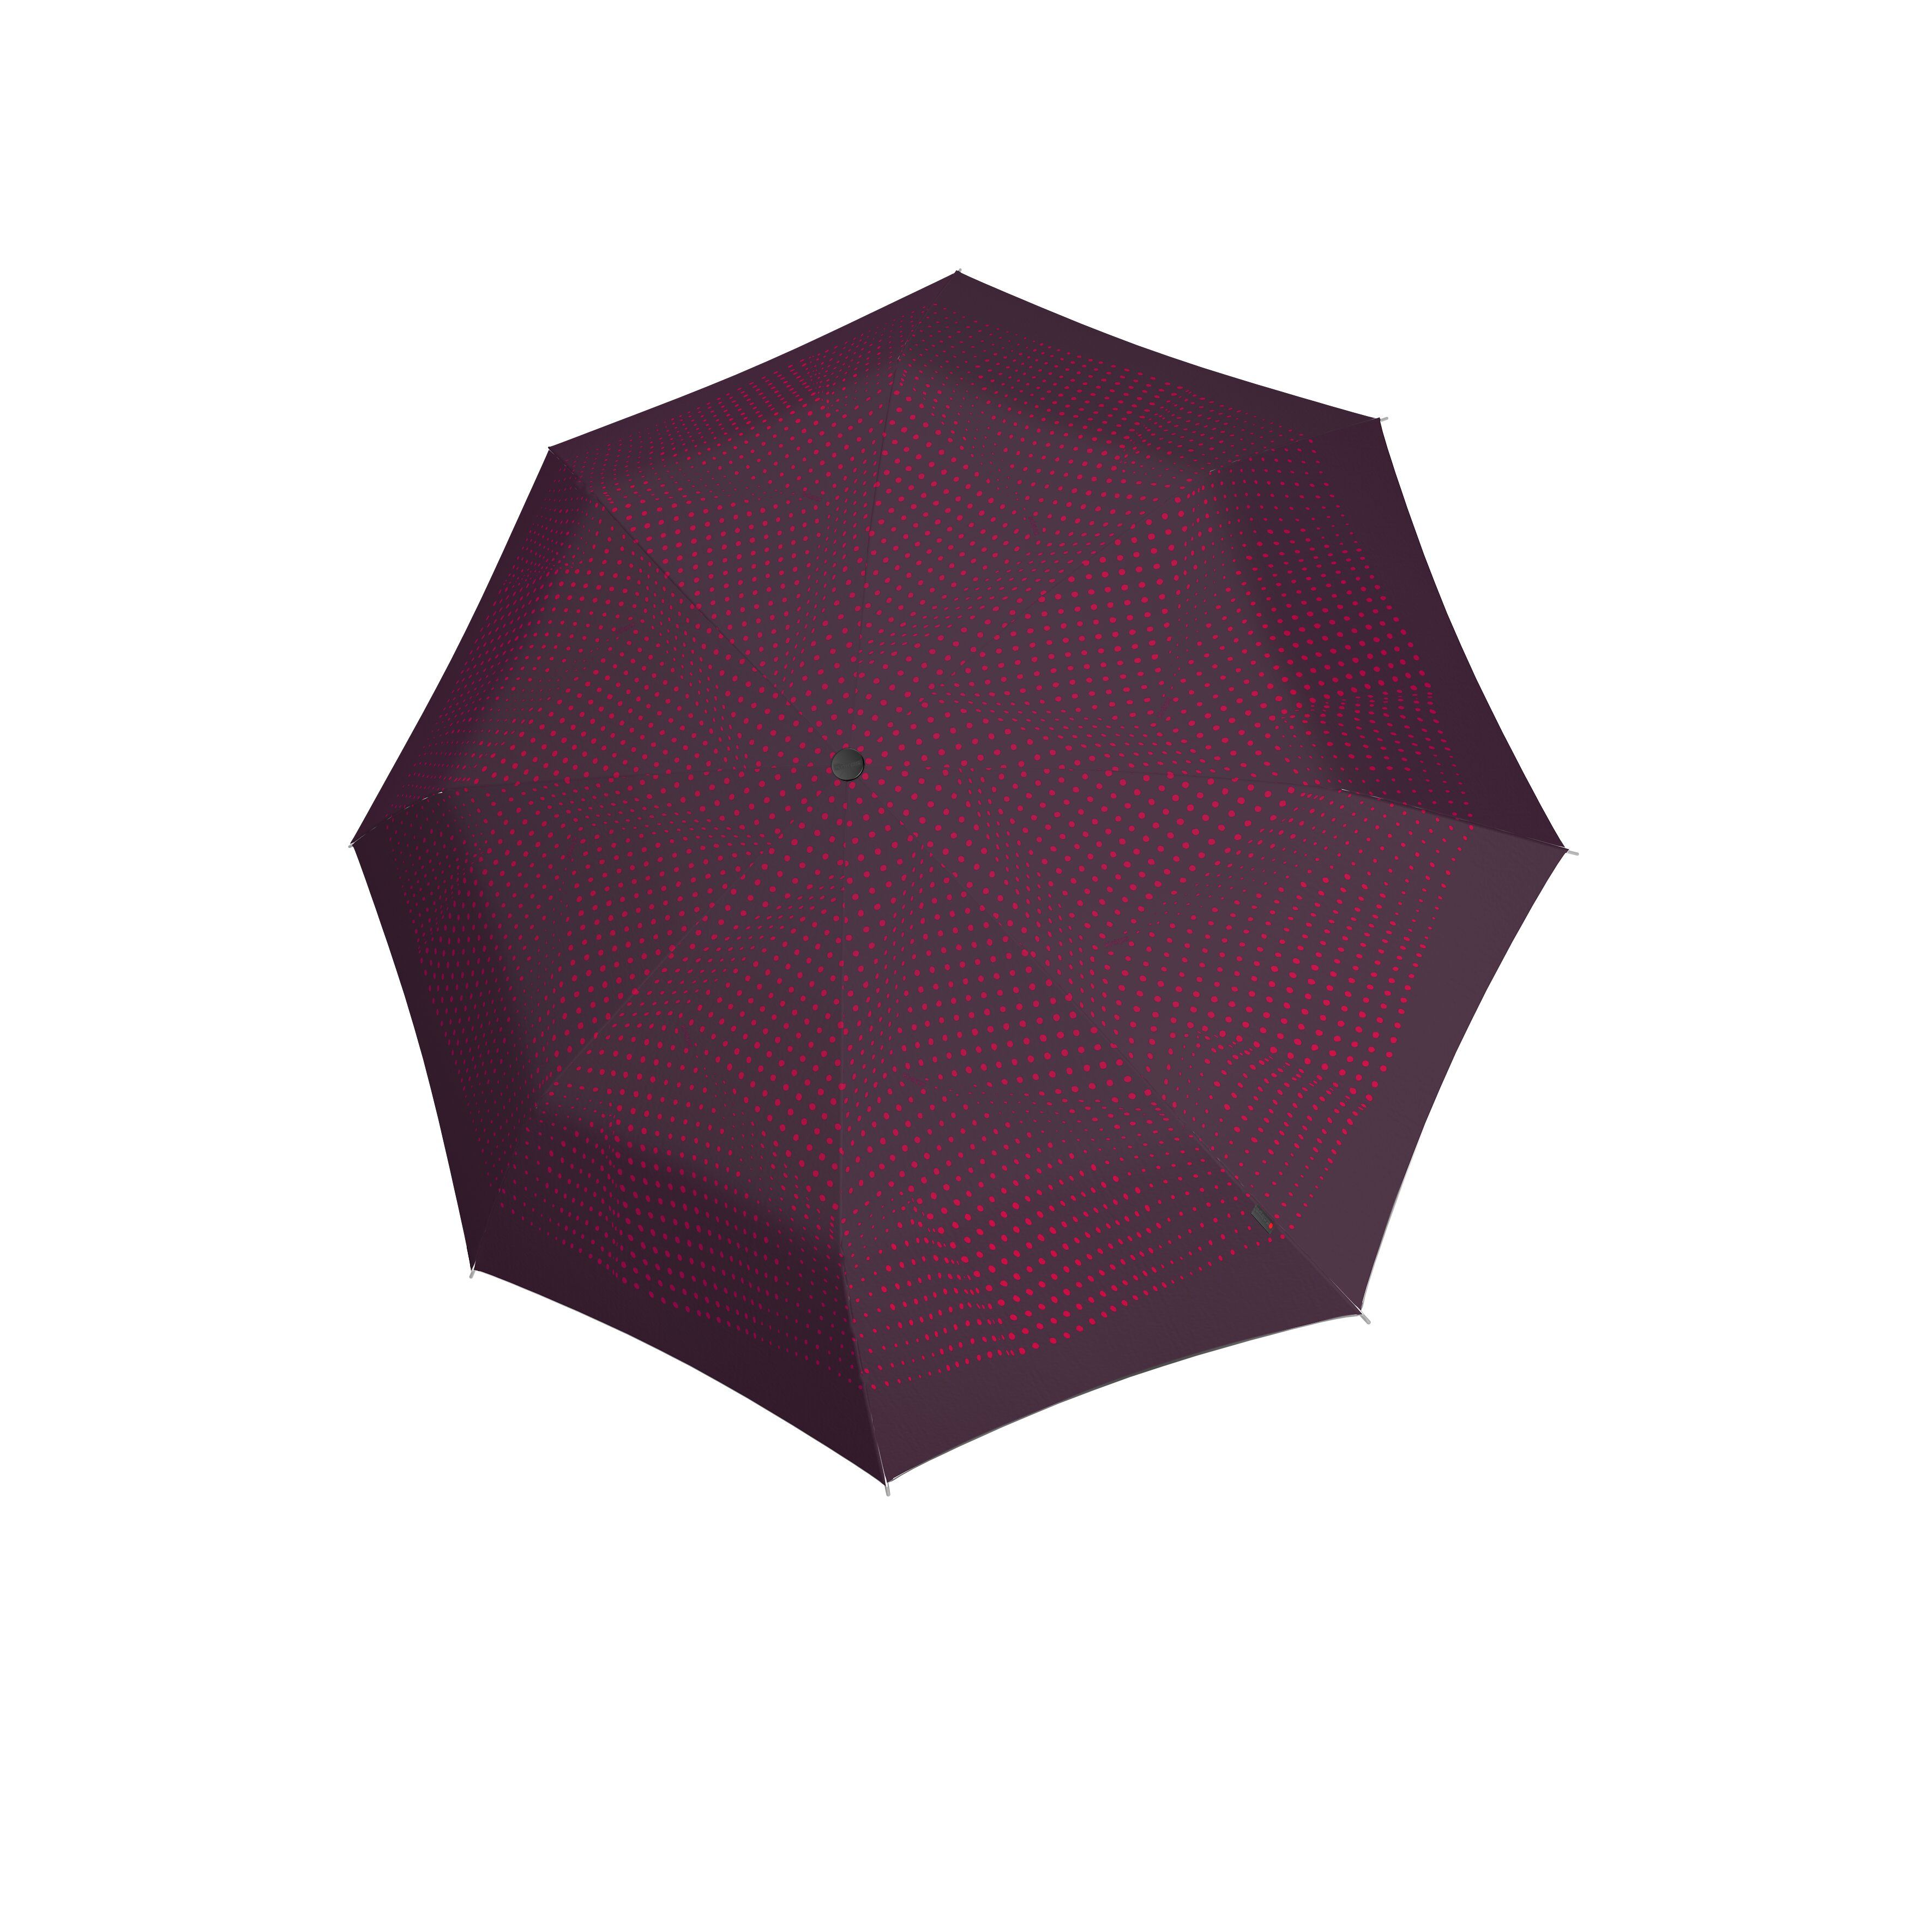 Knirps Umbrella Knirps T.050 medium manual difference berry ecorepel